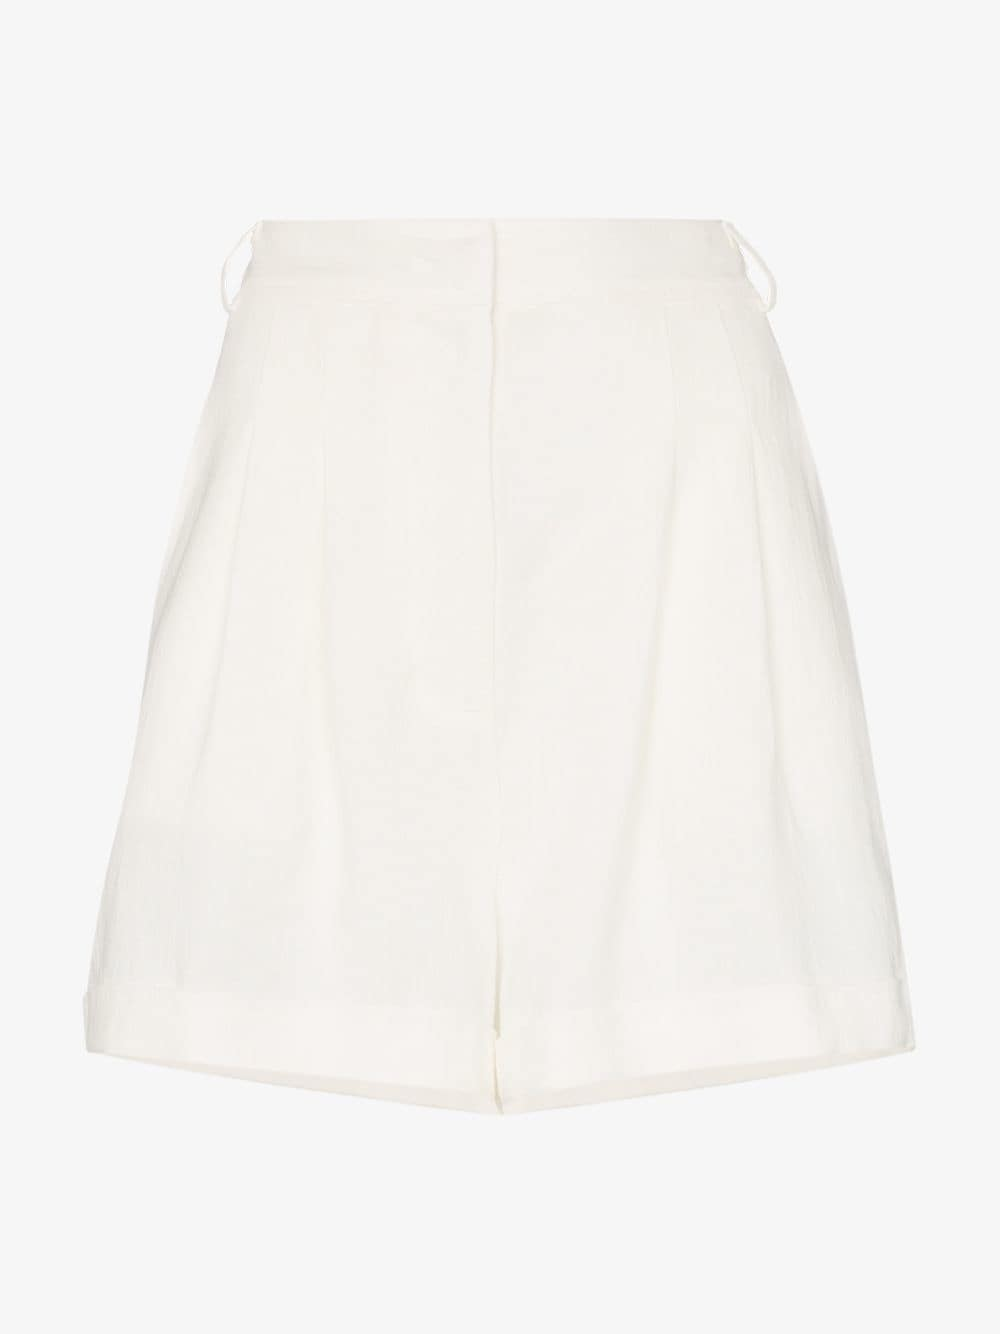 Le Kasha cesaree pleated line shorts in white